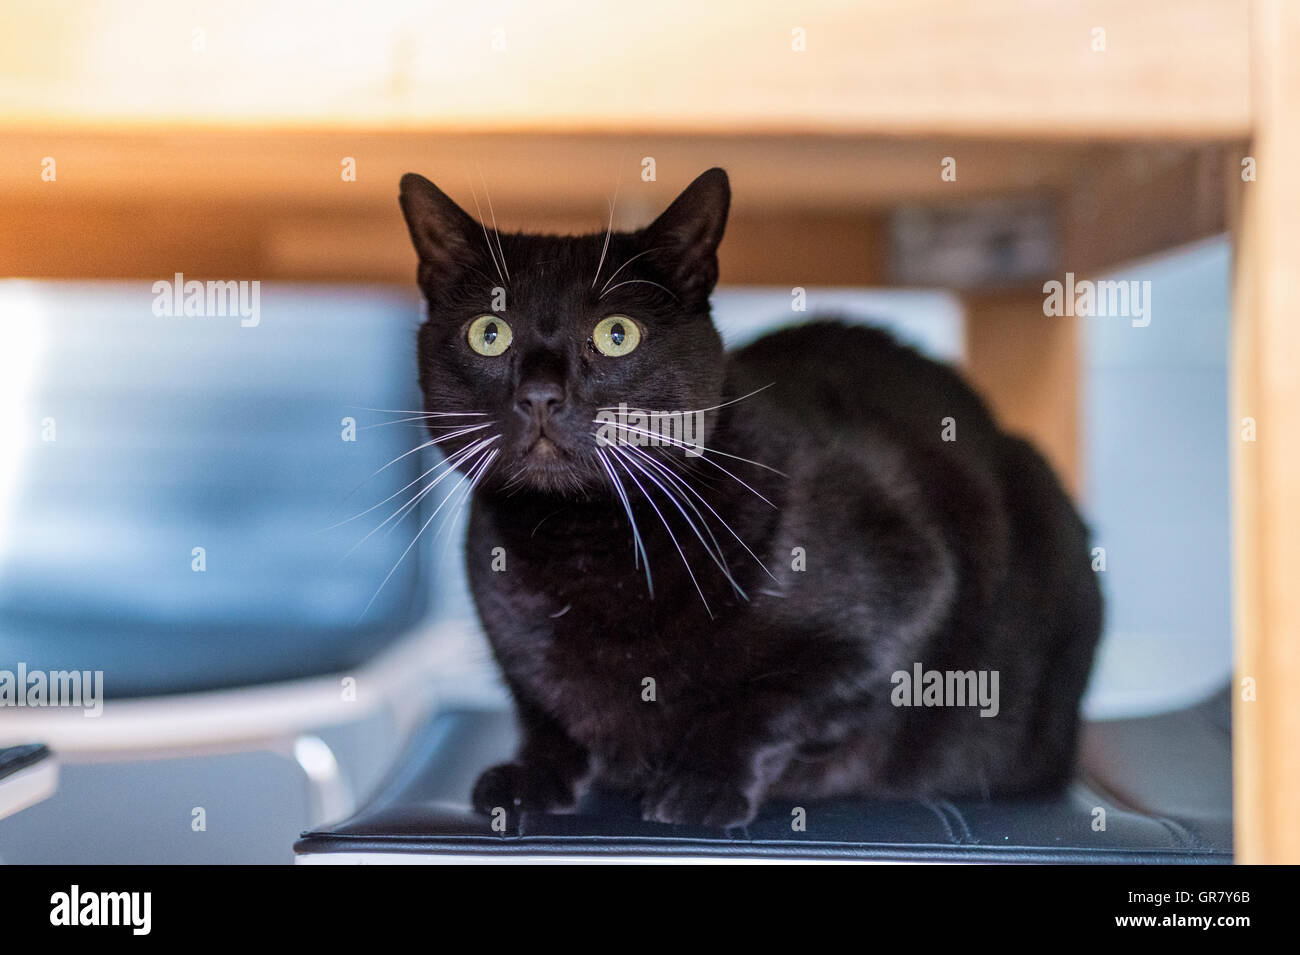 A Black Cat Sitting Under The Table - Stock Image